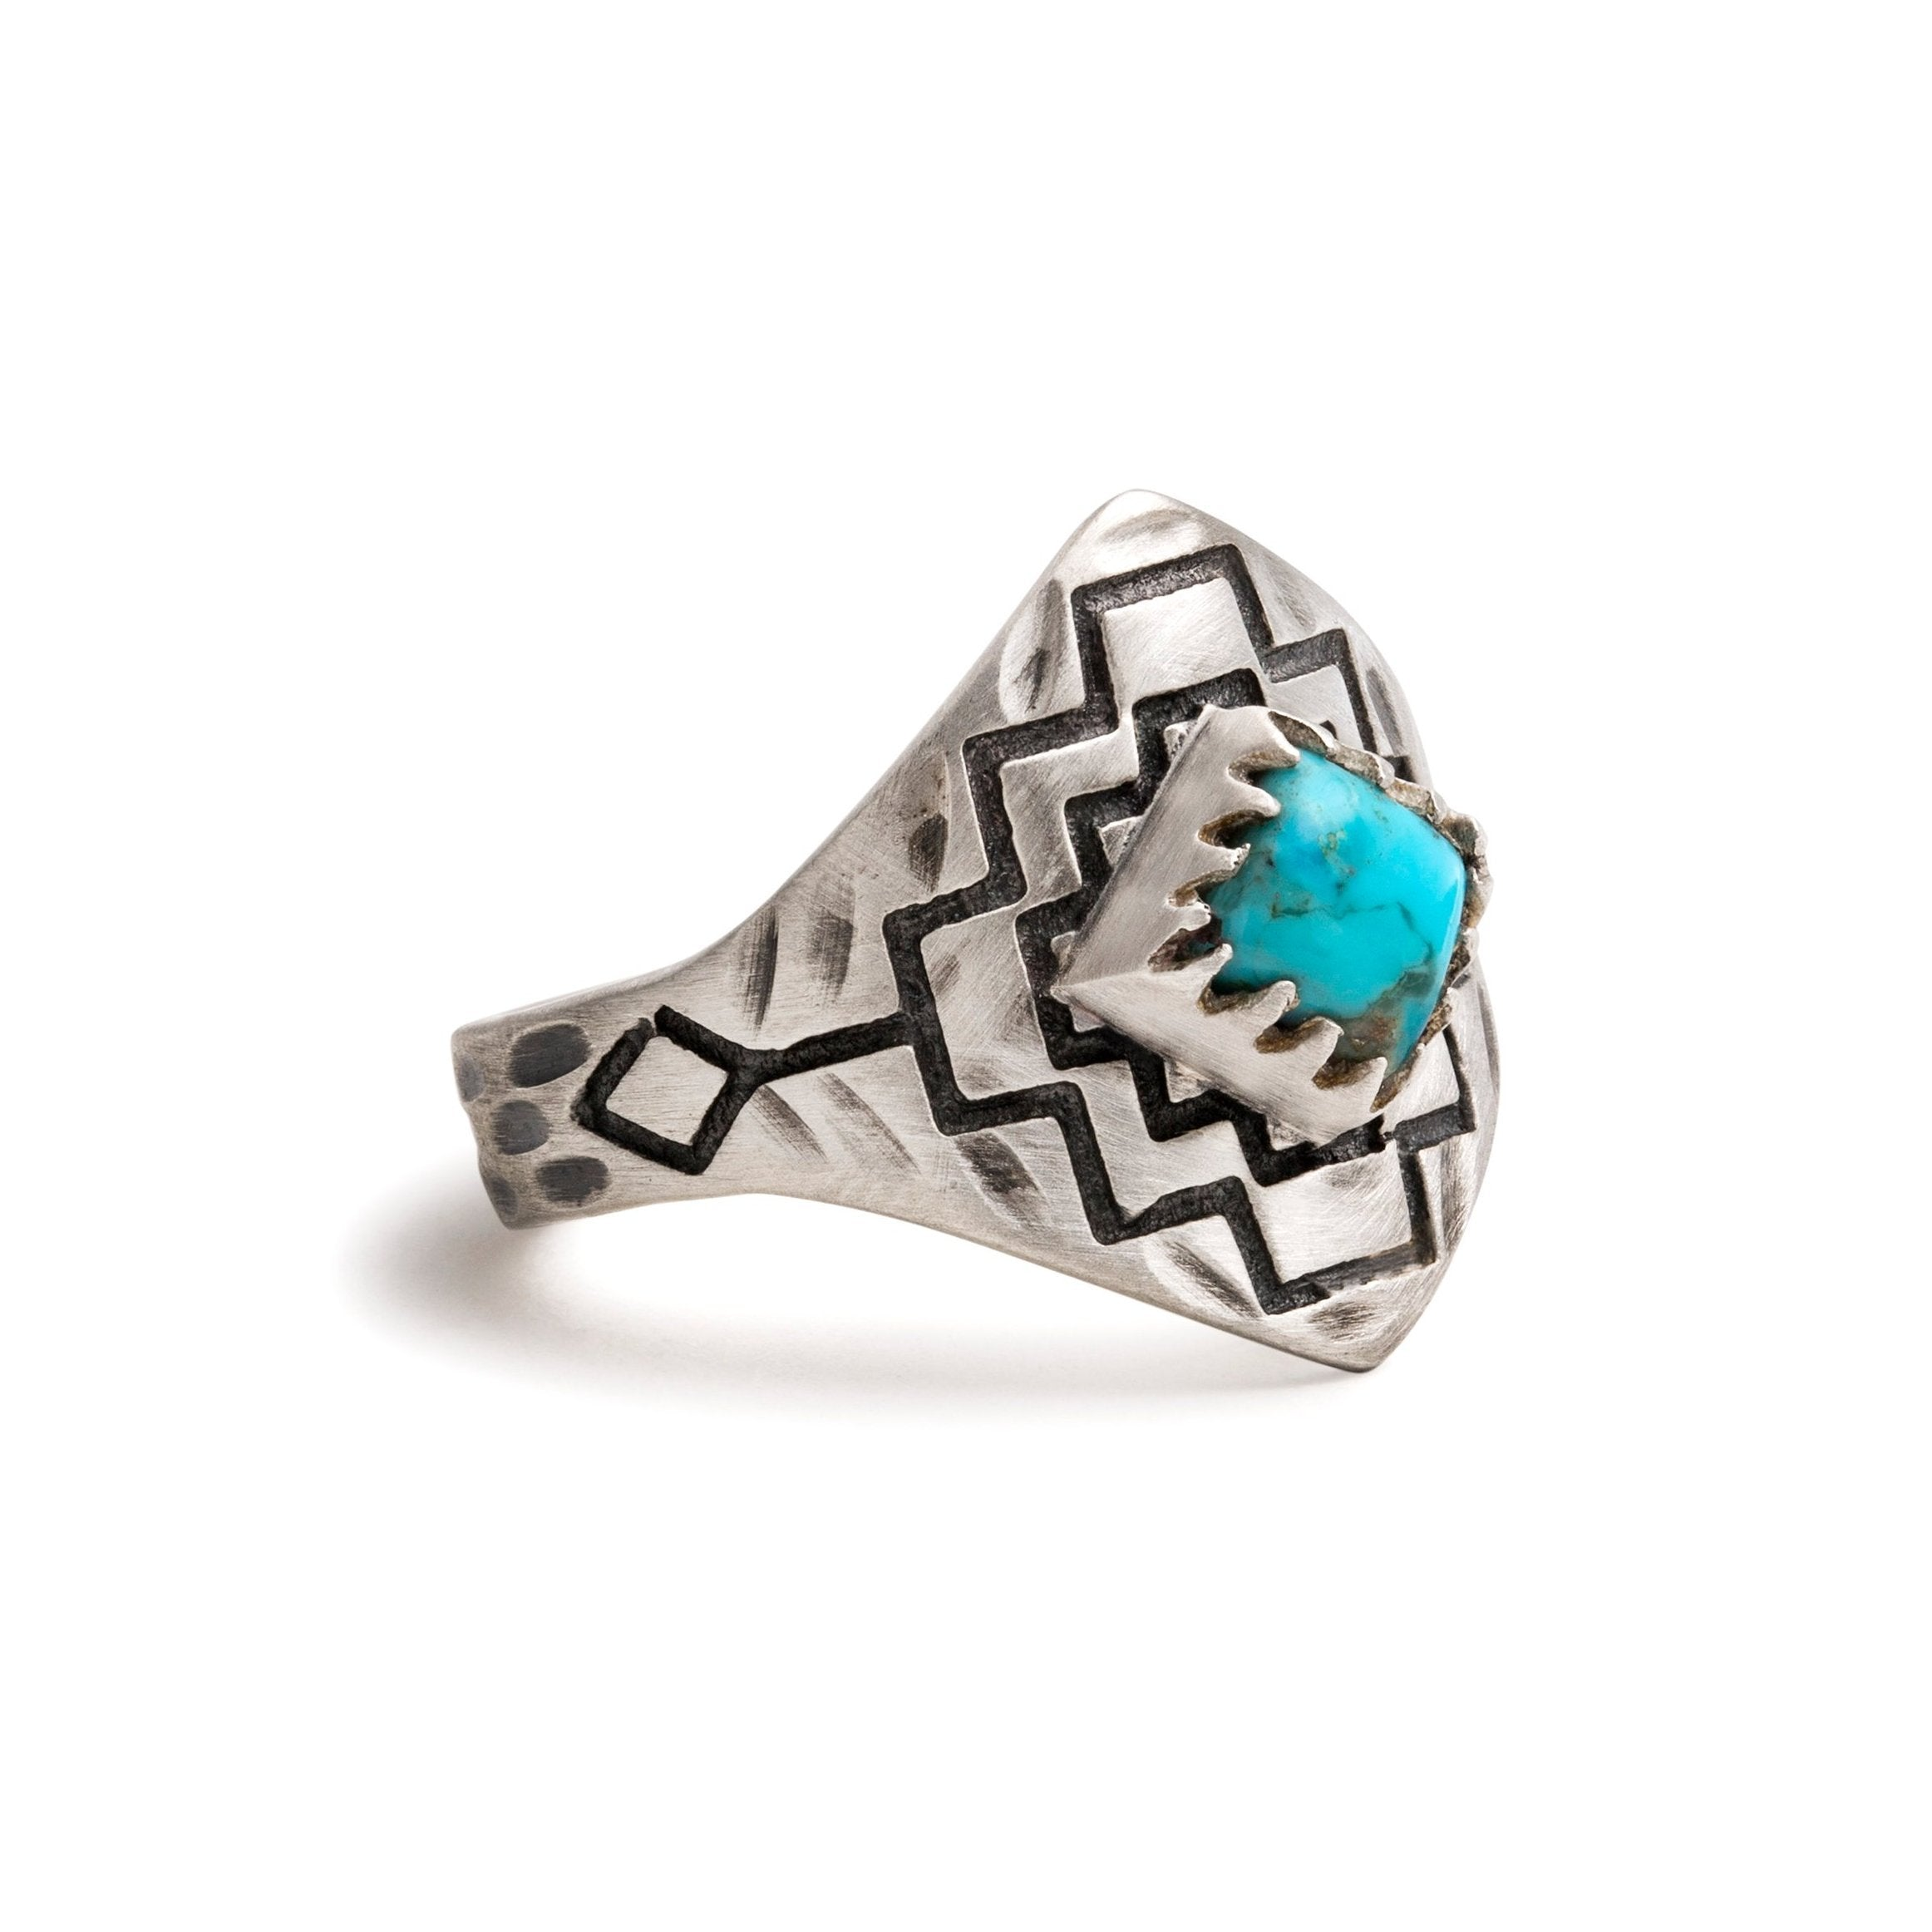 Hiouchi Jewels - Four Winds Ring